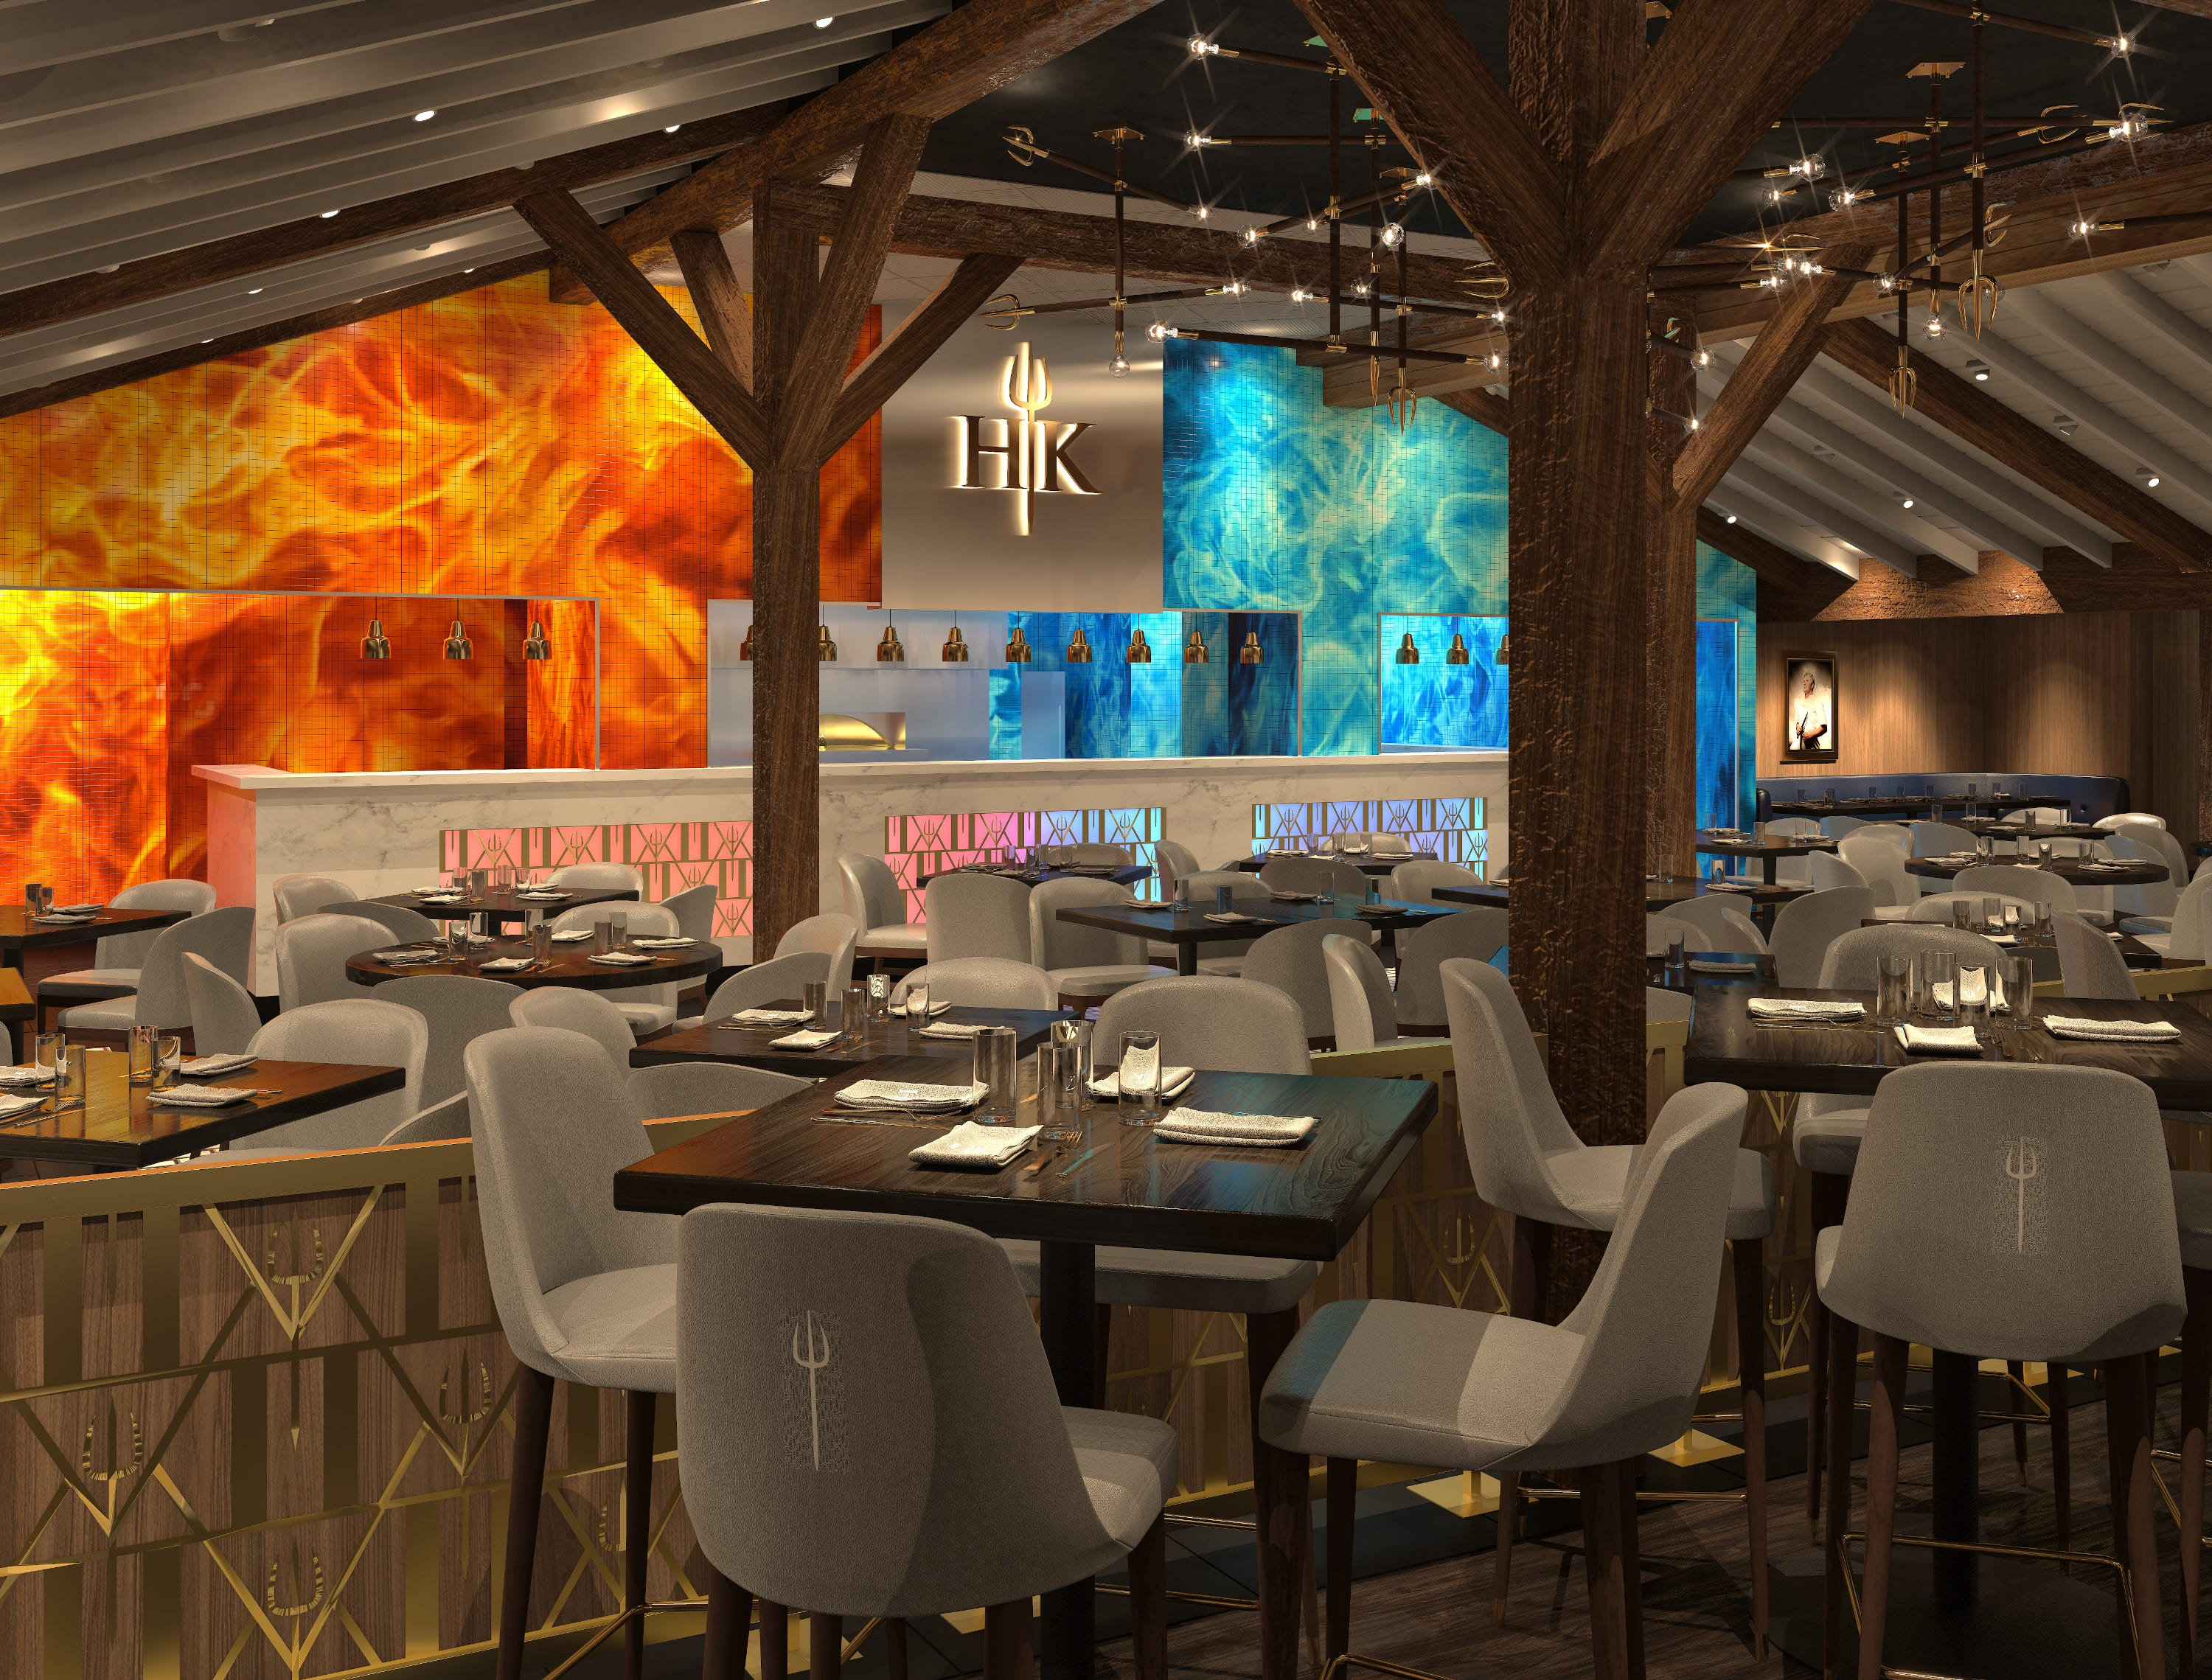 Lake Tahoe Hell S Kitchen Restaurant Received 8 000 Reservations